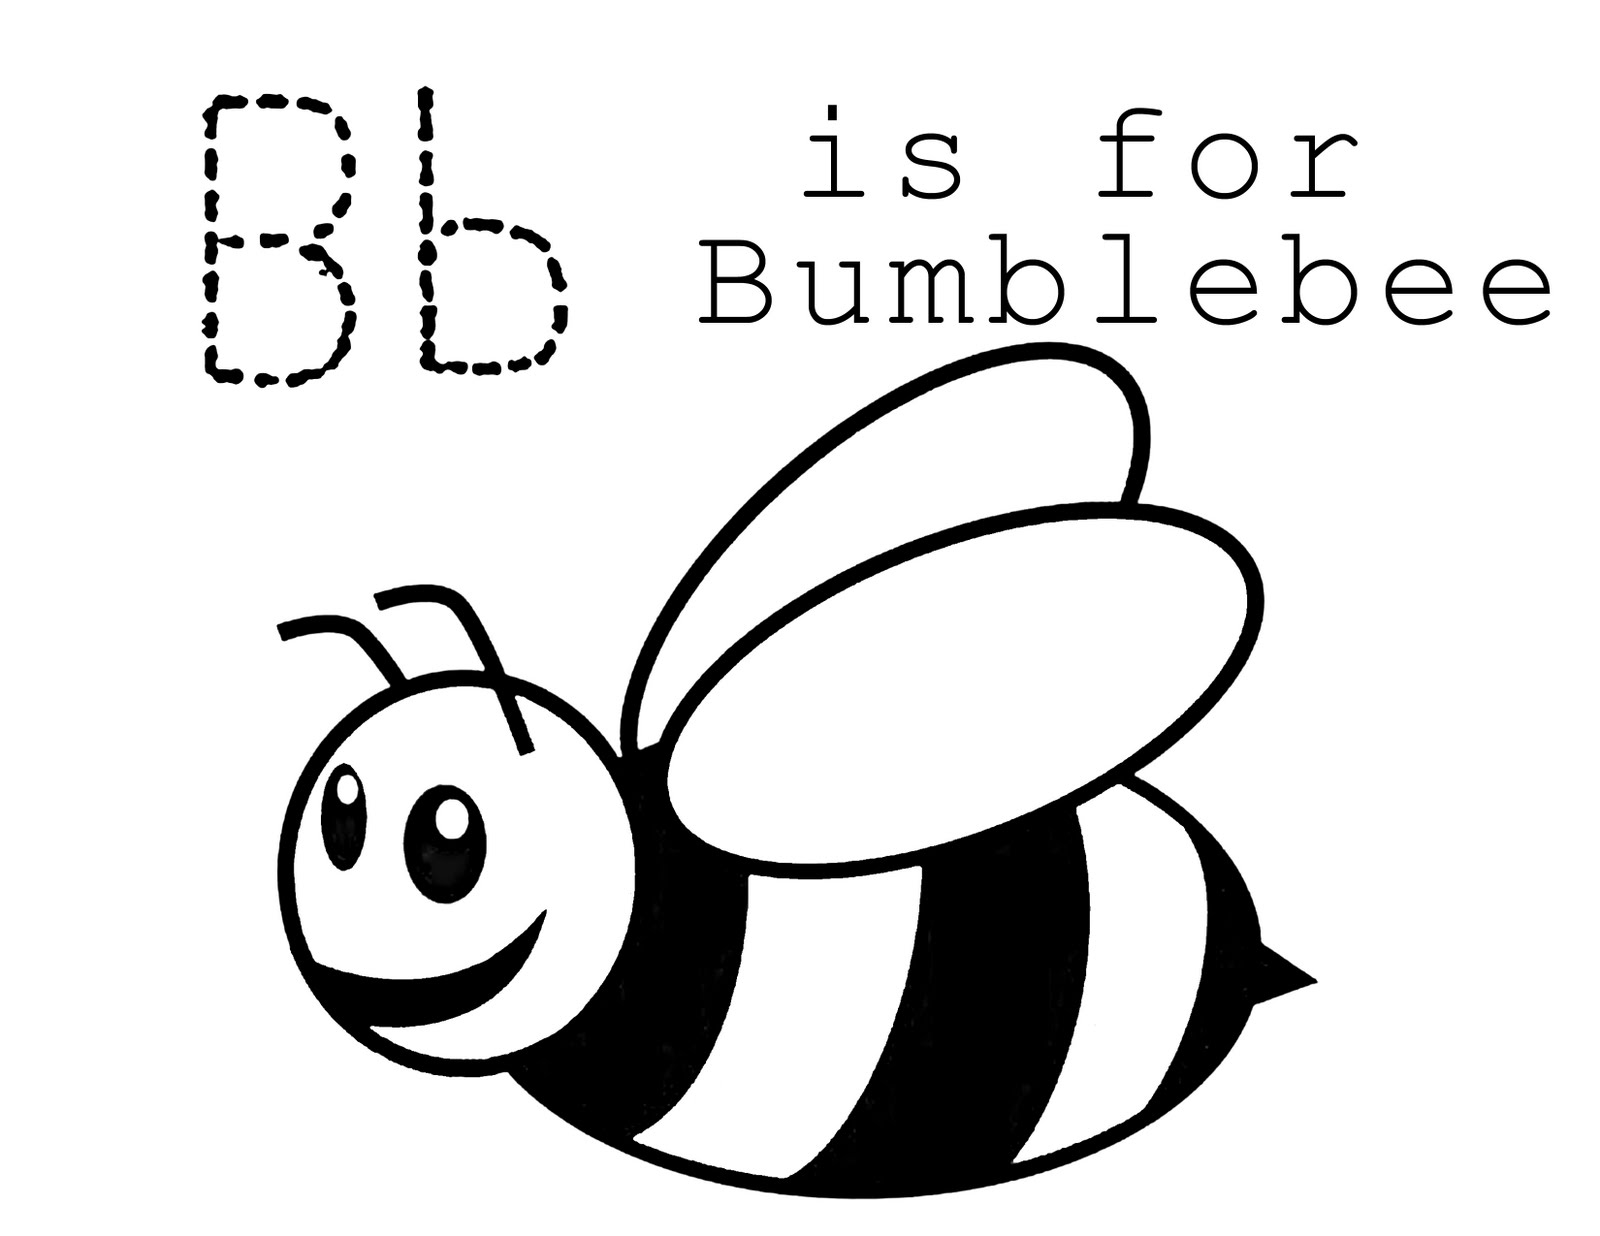 bumble bee coloring sheets bumble bee hive coloring pages sketch coloring page bumble bee coloring sheets